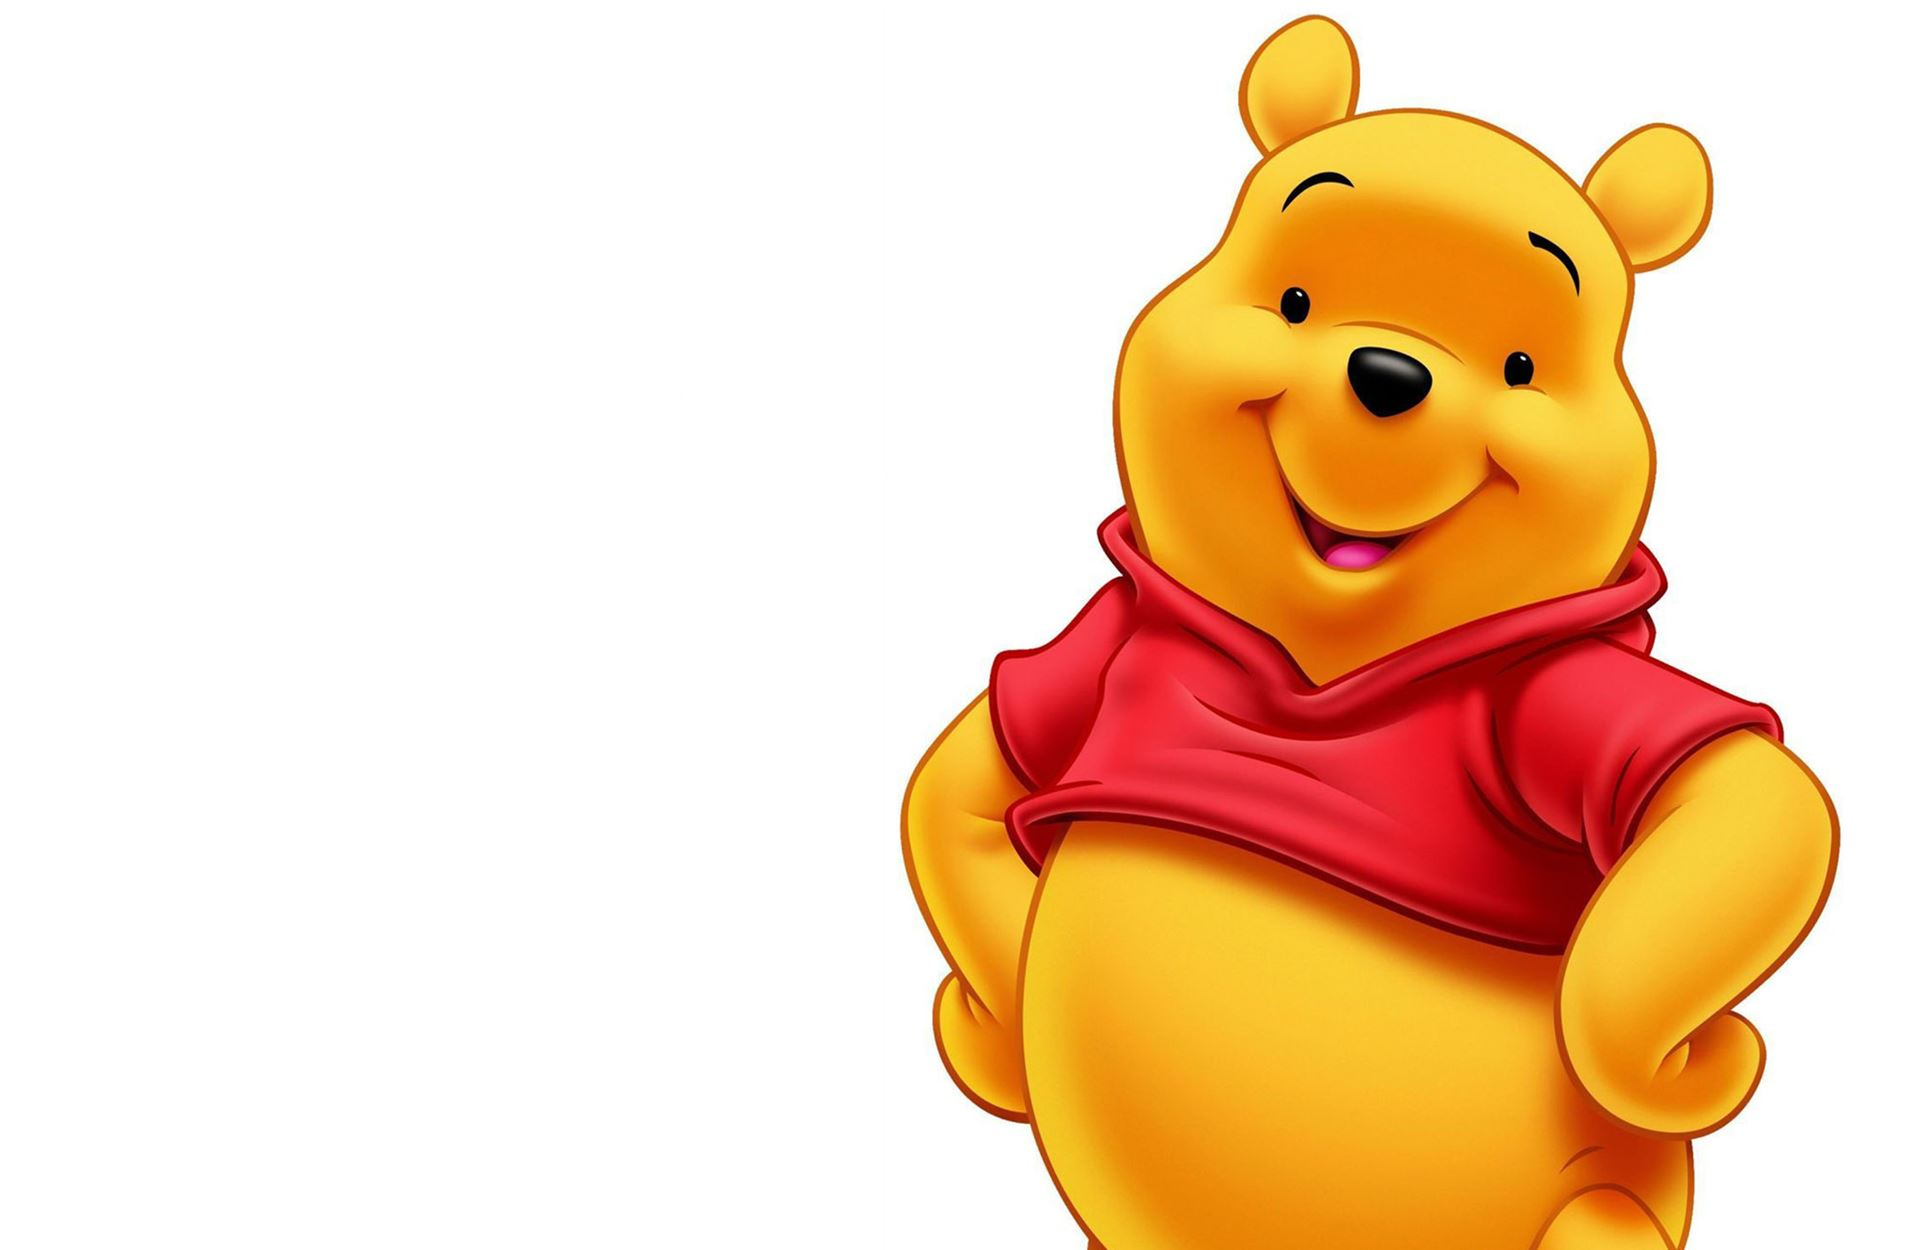 78 Winnie The Pooh Wallpapers On Wallpapersafari